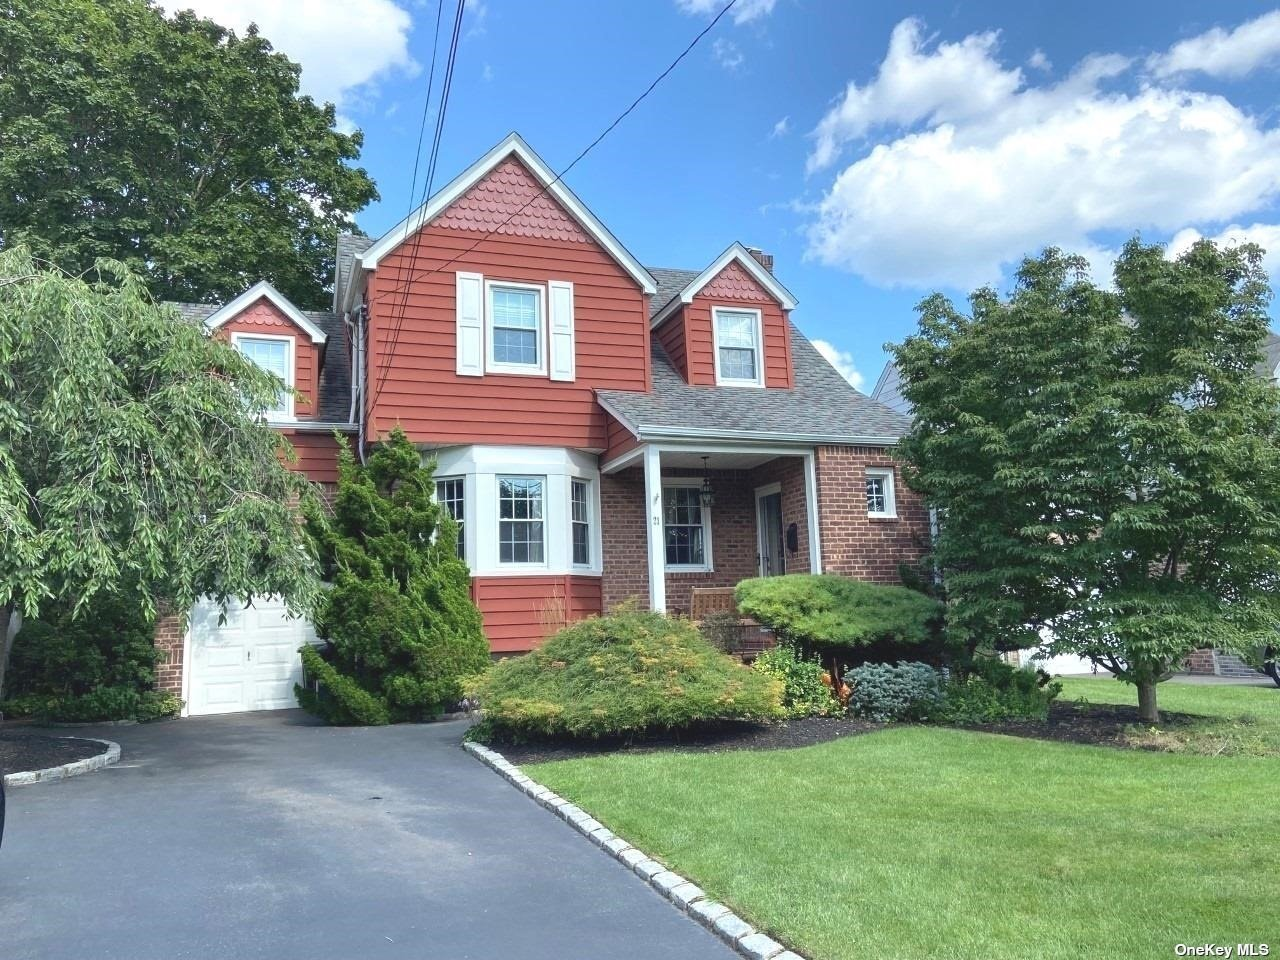 Beautiful 3 bedroom home exudes Charm and Character. Gleaming Hardwood floors throughout upstairs and down. Family room with sklylights and sliders to yard for entertaining. Full finished basement with closets galore! Pull down attic for even more storage. Merrick Schools, Move in Condition!